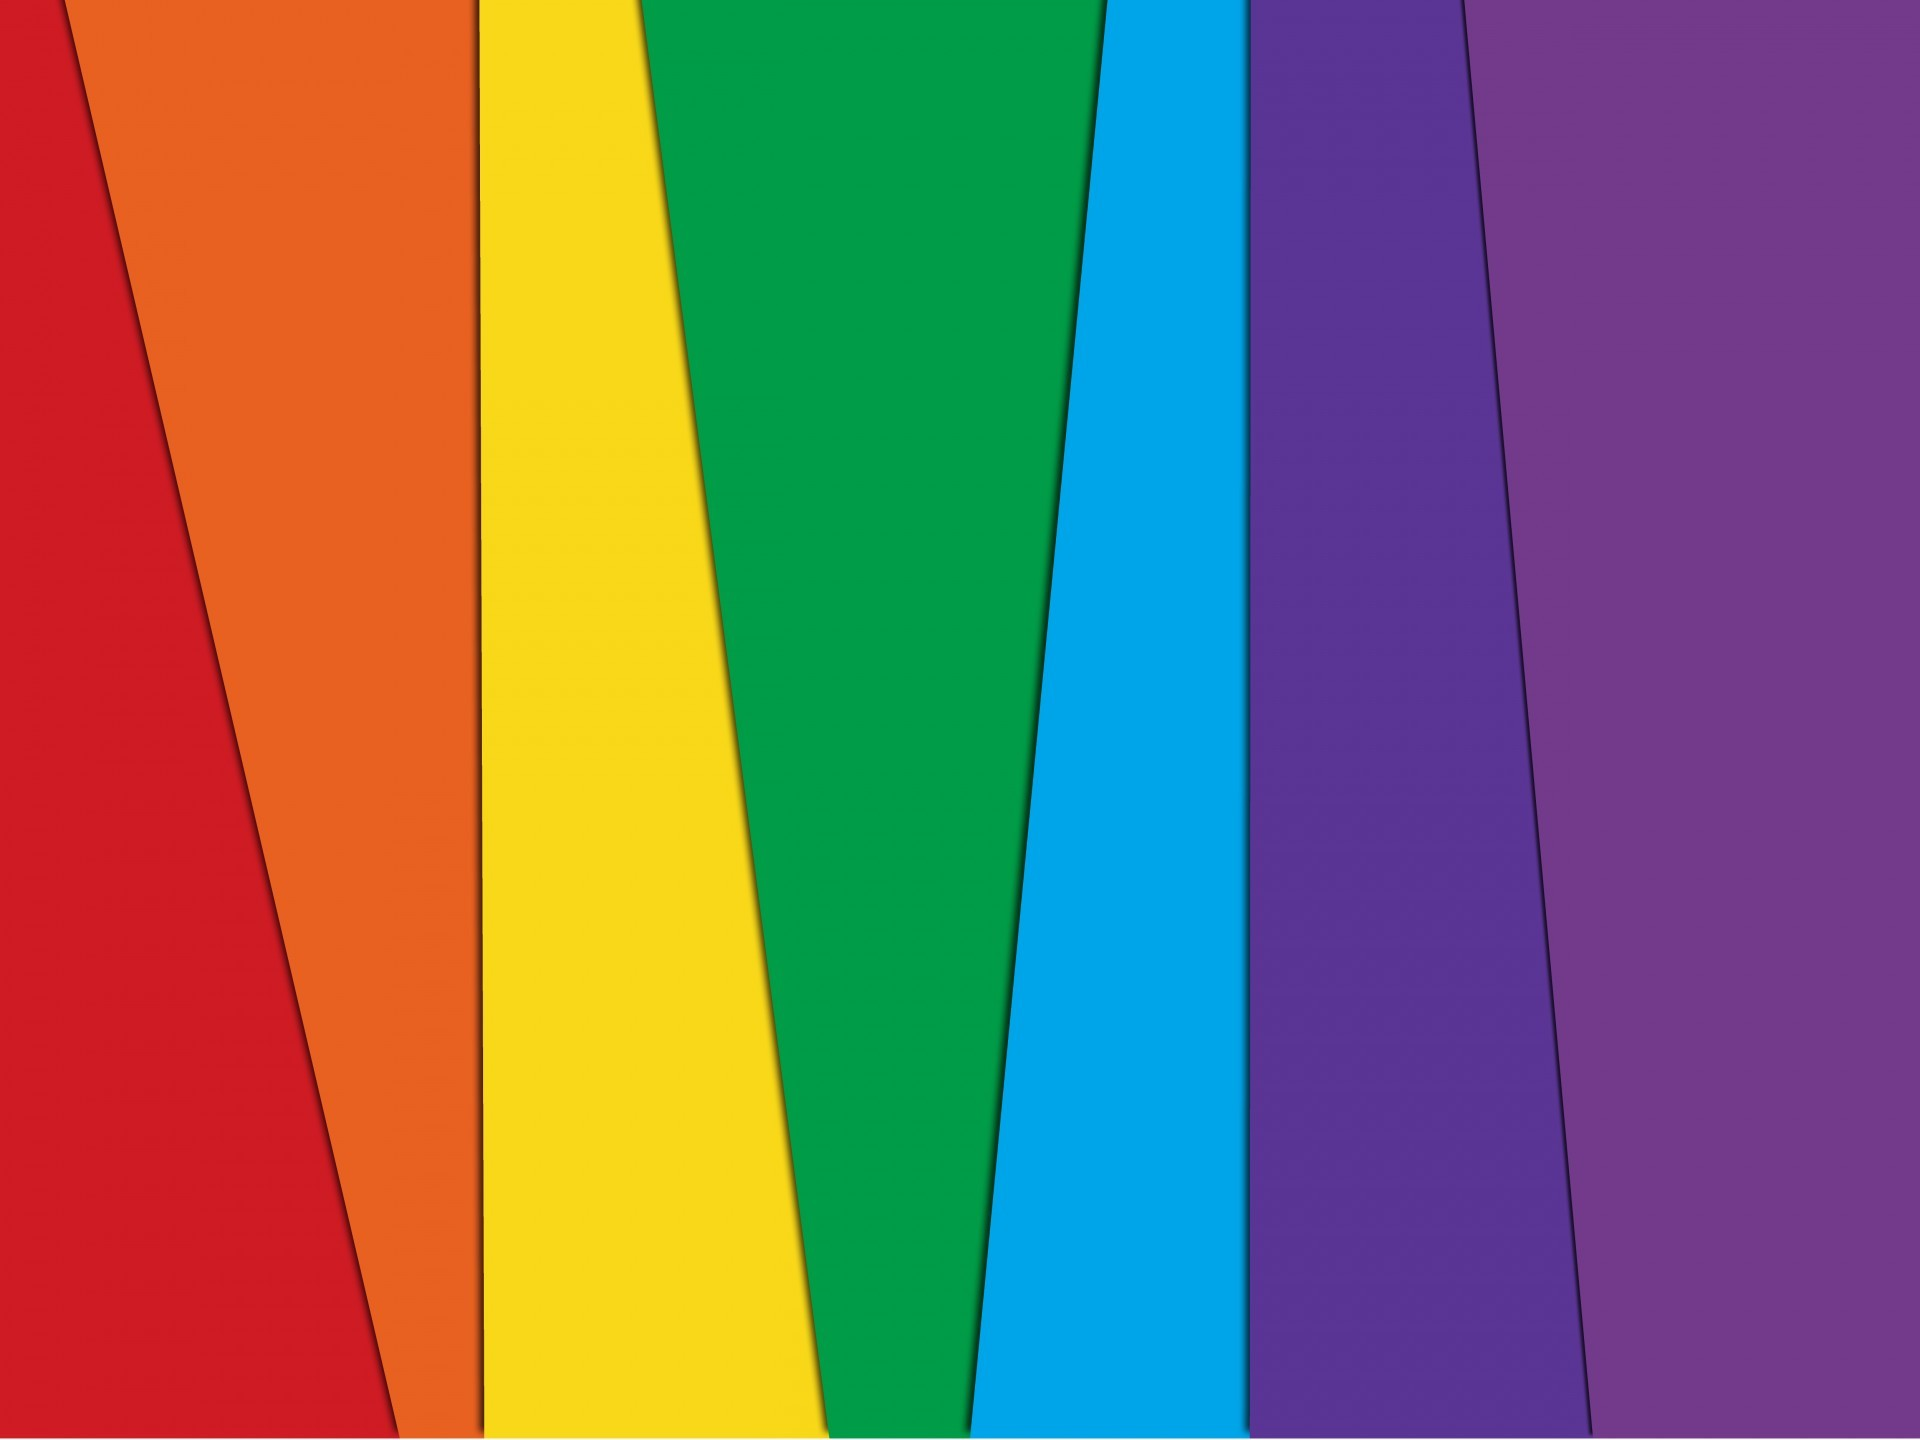 1920x1440 abstract,background,rainbow,rainbow colors,wallpaper,paper,red,